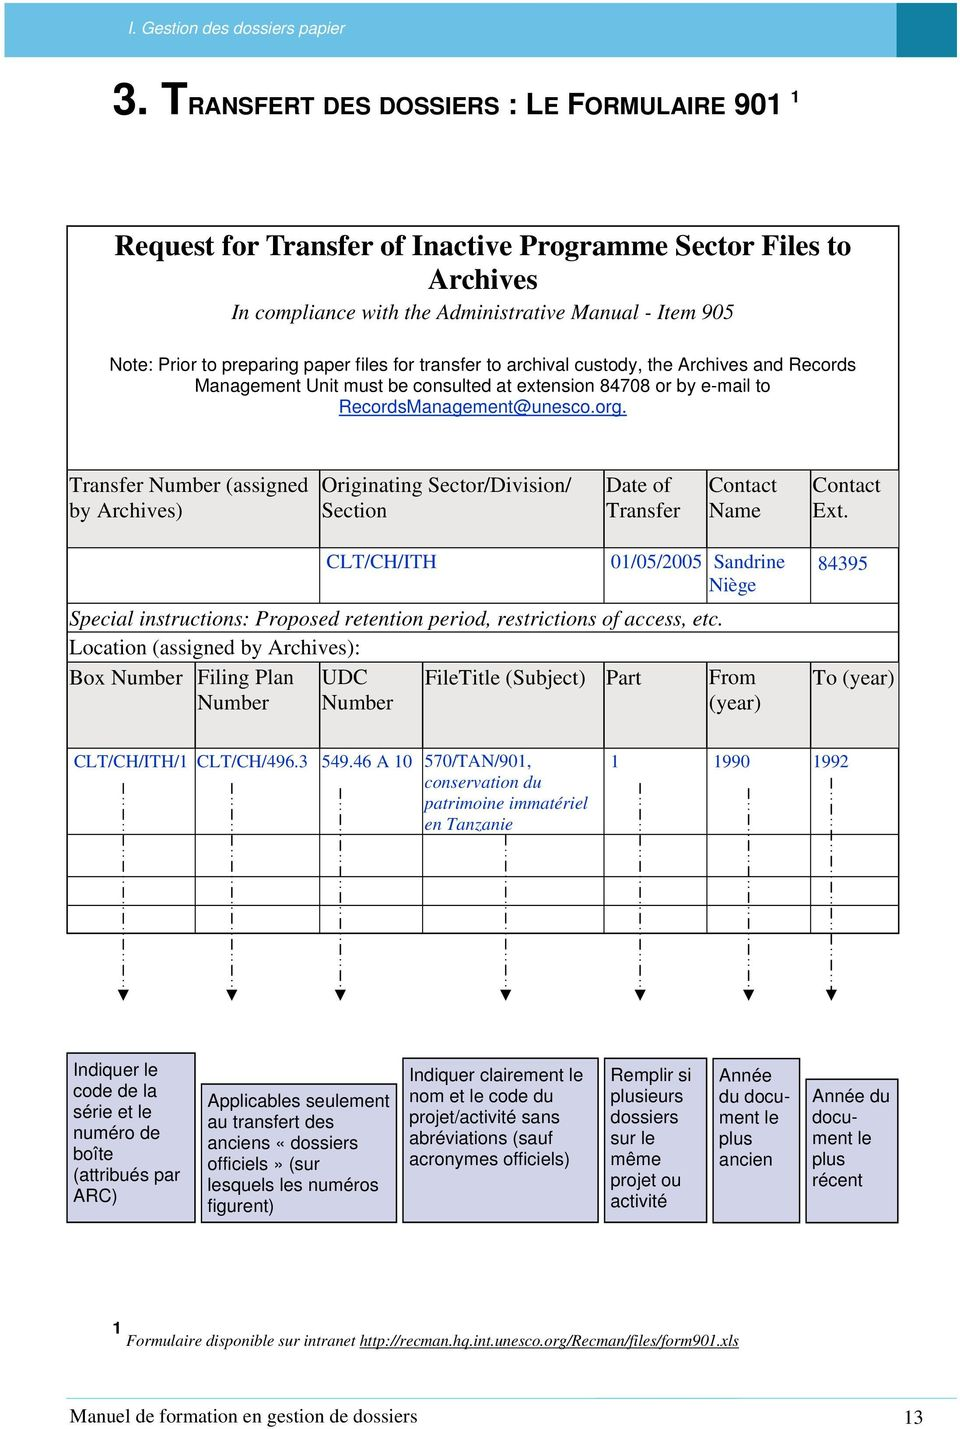 files for transfer to archival custody, the Archives and Records Management Unit must be consulted at extension 84708 or by e-mail to RecordsManagement@unesco.org.